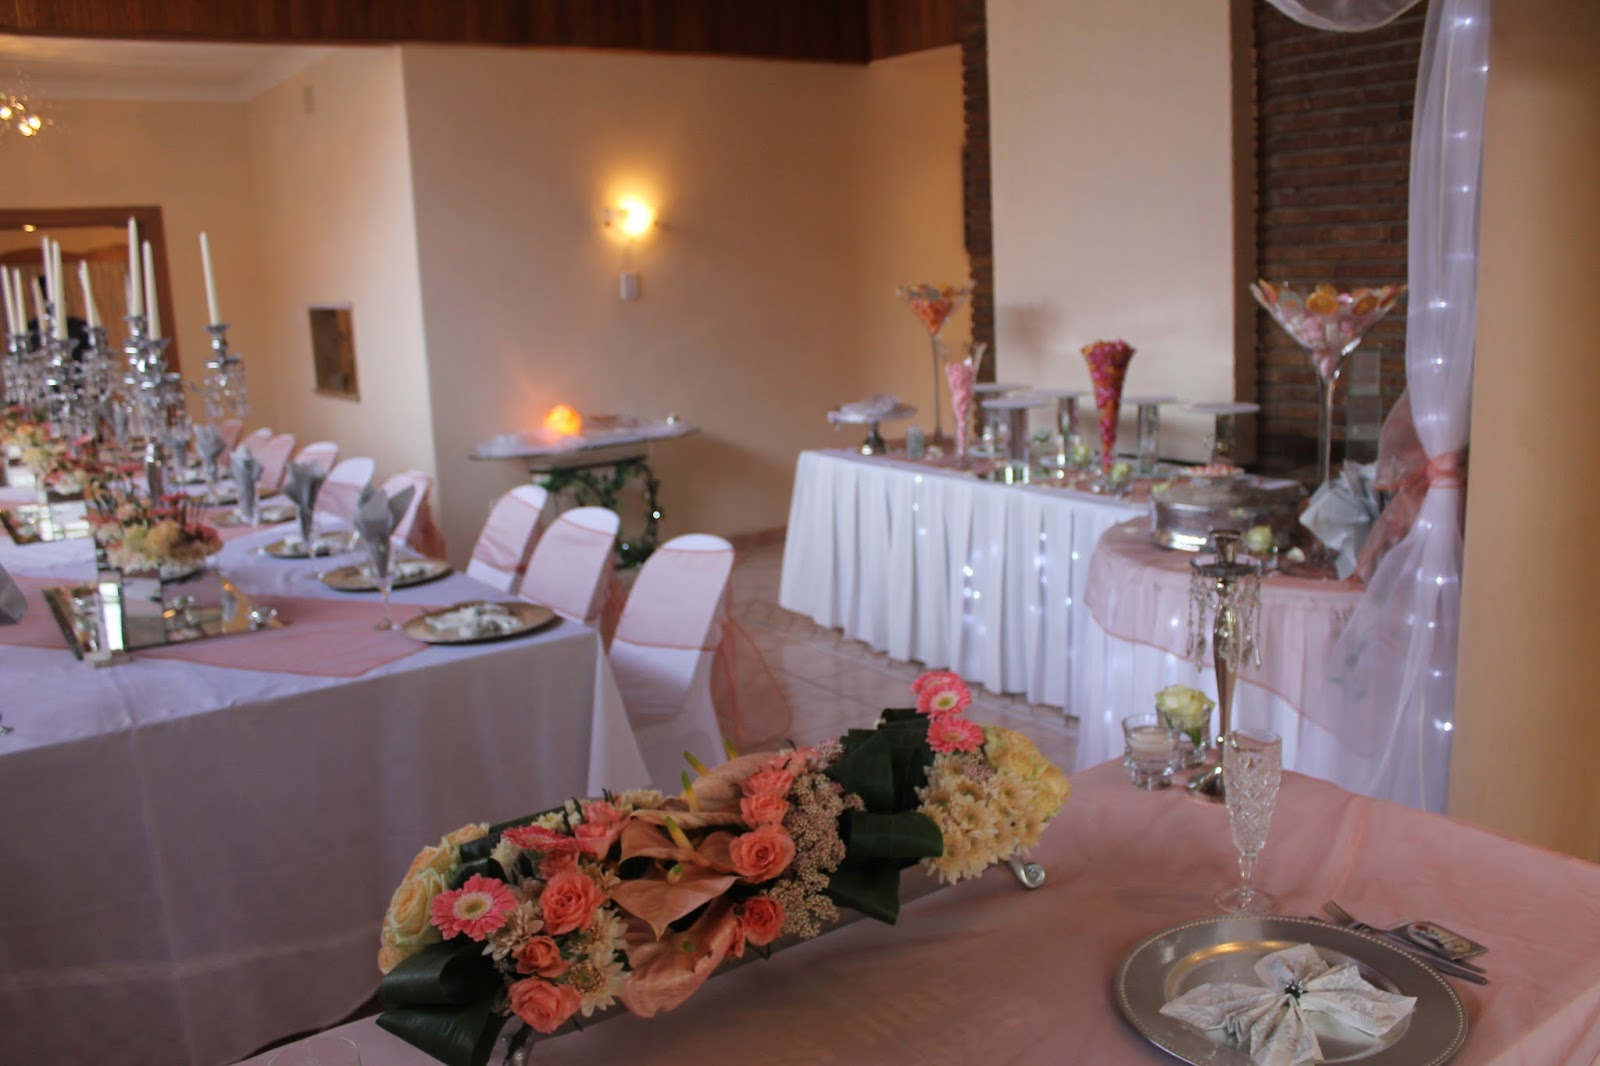 Venue For Baby Showers Bridal Showers Weddings With Halaal Catering In Johannesburg